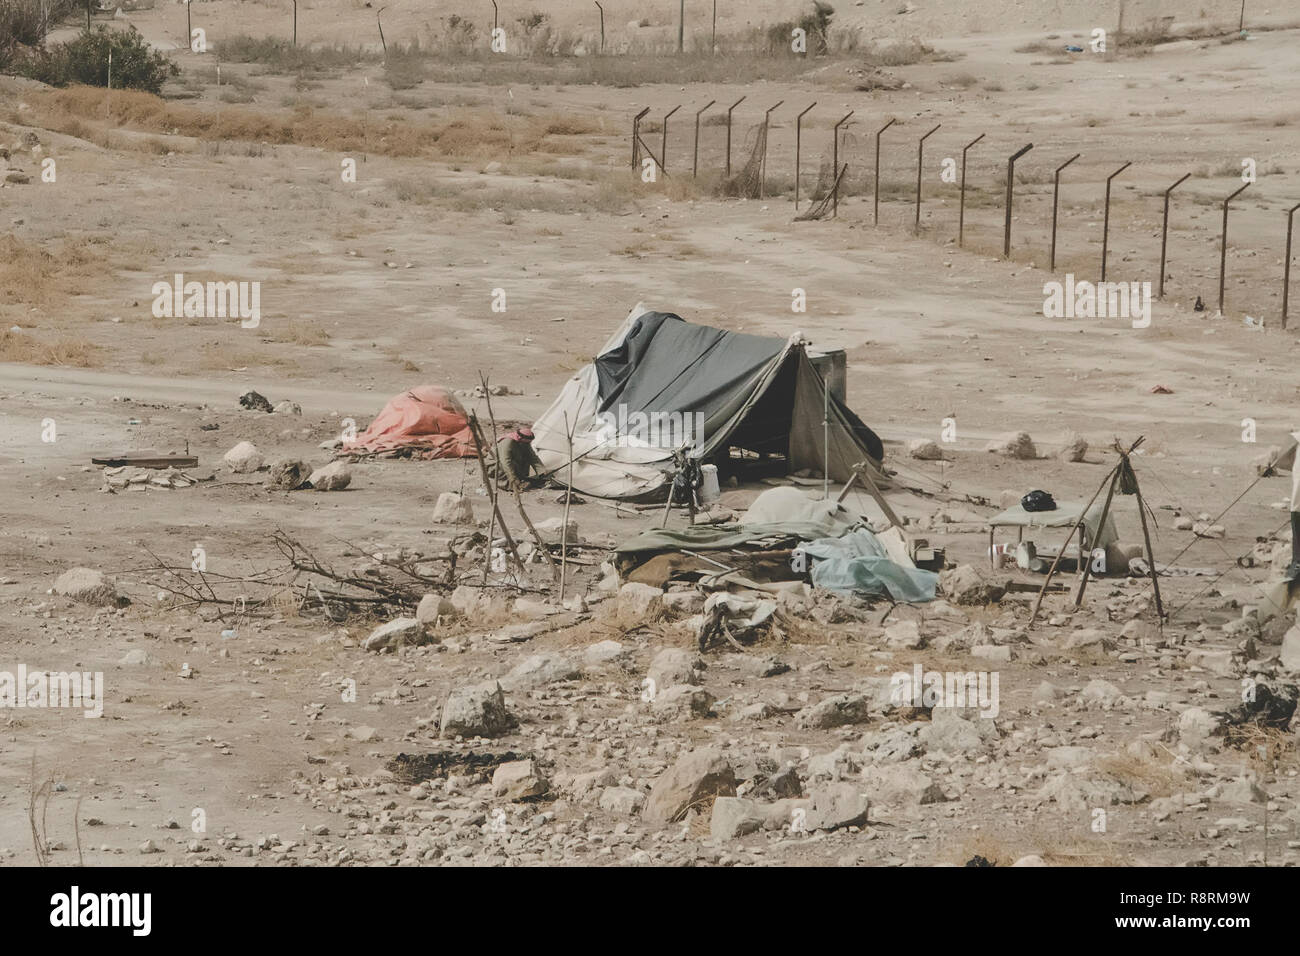 Bedouin houses in the desert near Dead Sea. Poor regions of the world. A indigent Bedouin sitting at the tent. Poverty in Jordan. middle East - Stock Image